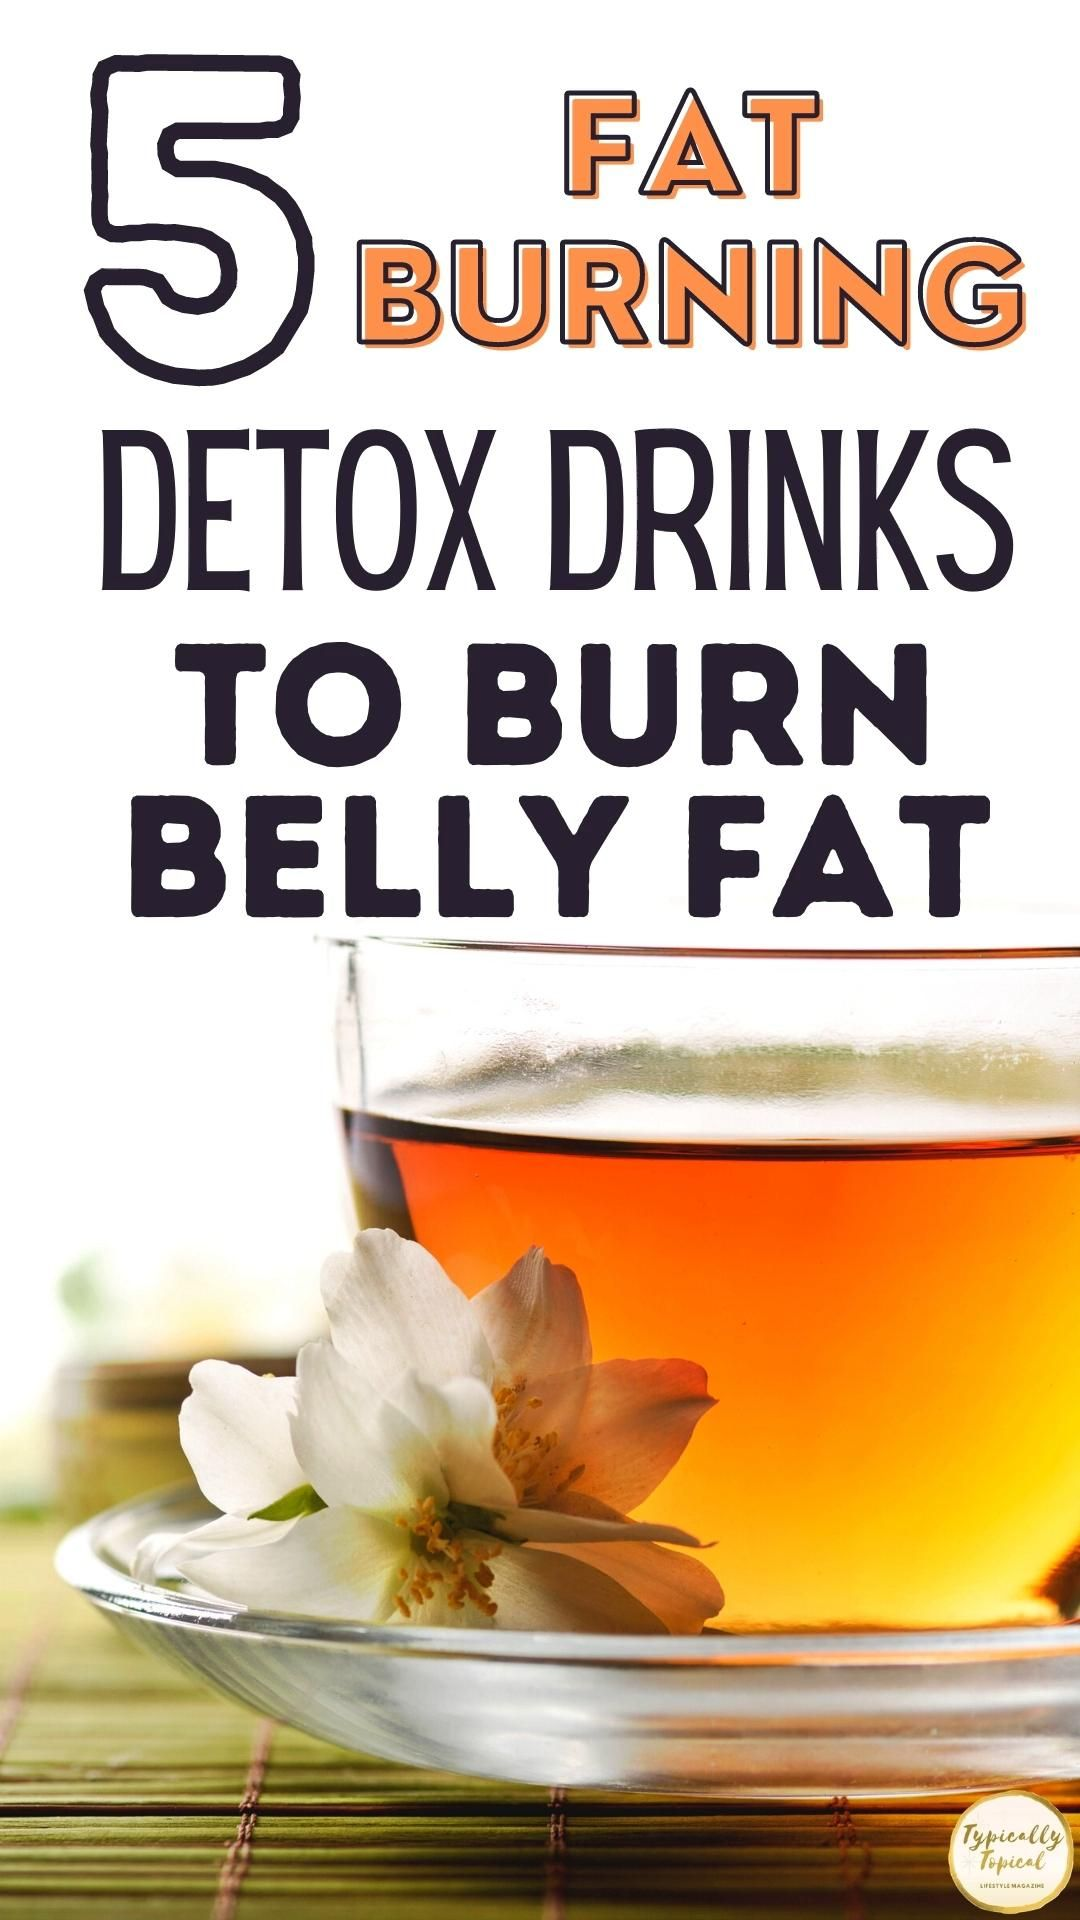 5 Proven Fat Burning Detox Drinks to Lose Belly Fat For a Flat Tummy | Natural Weight Loss Drinks